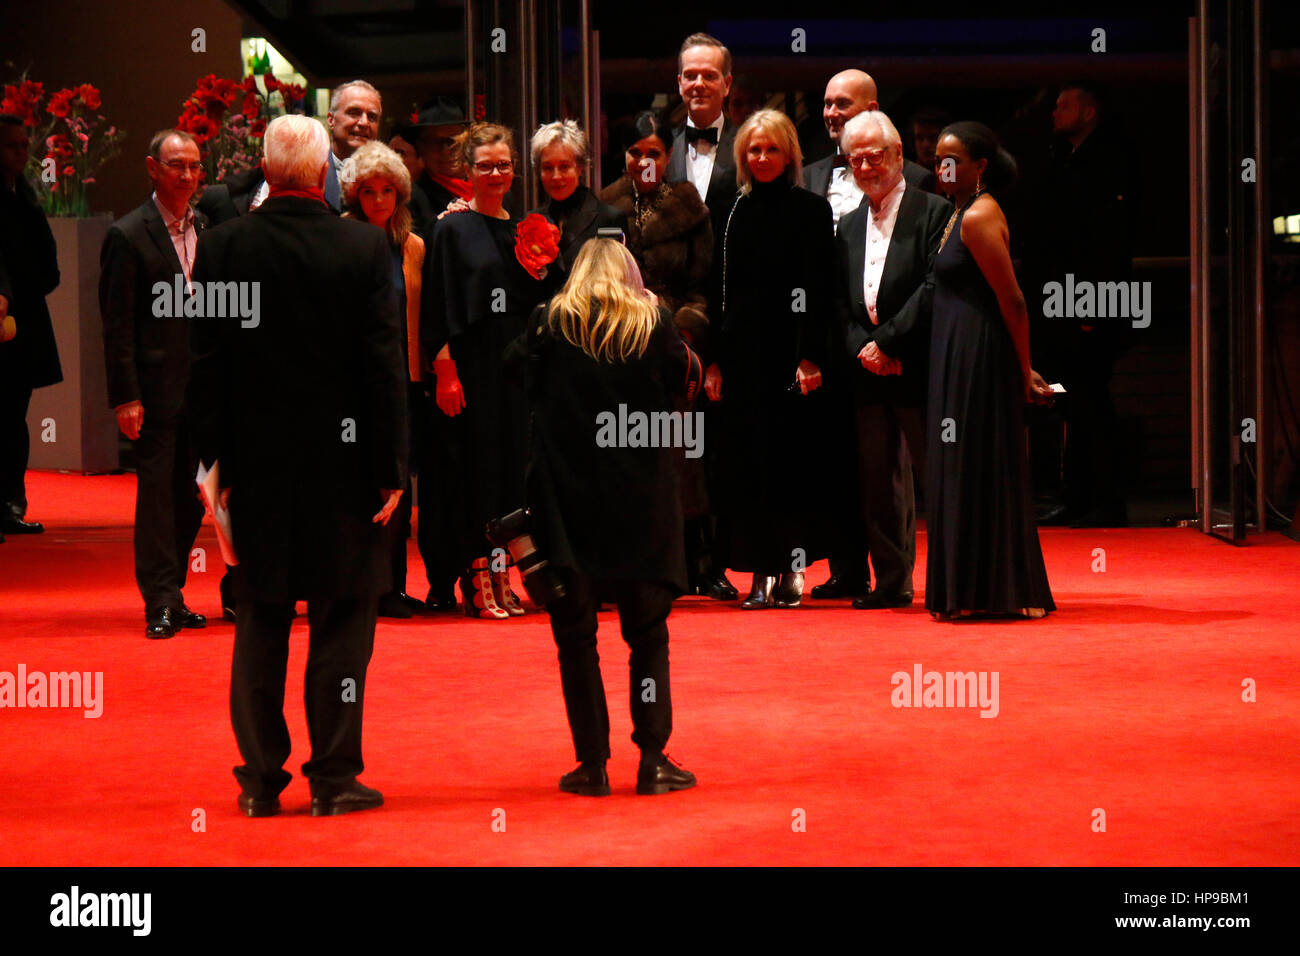 Roben Roter Teppich Berlinale Roter Teppich 2017 Berlinale 2017 Die Red